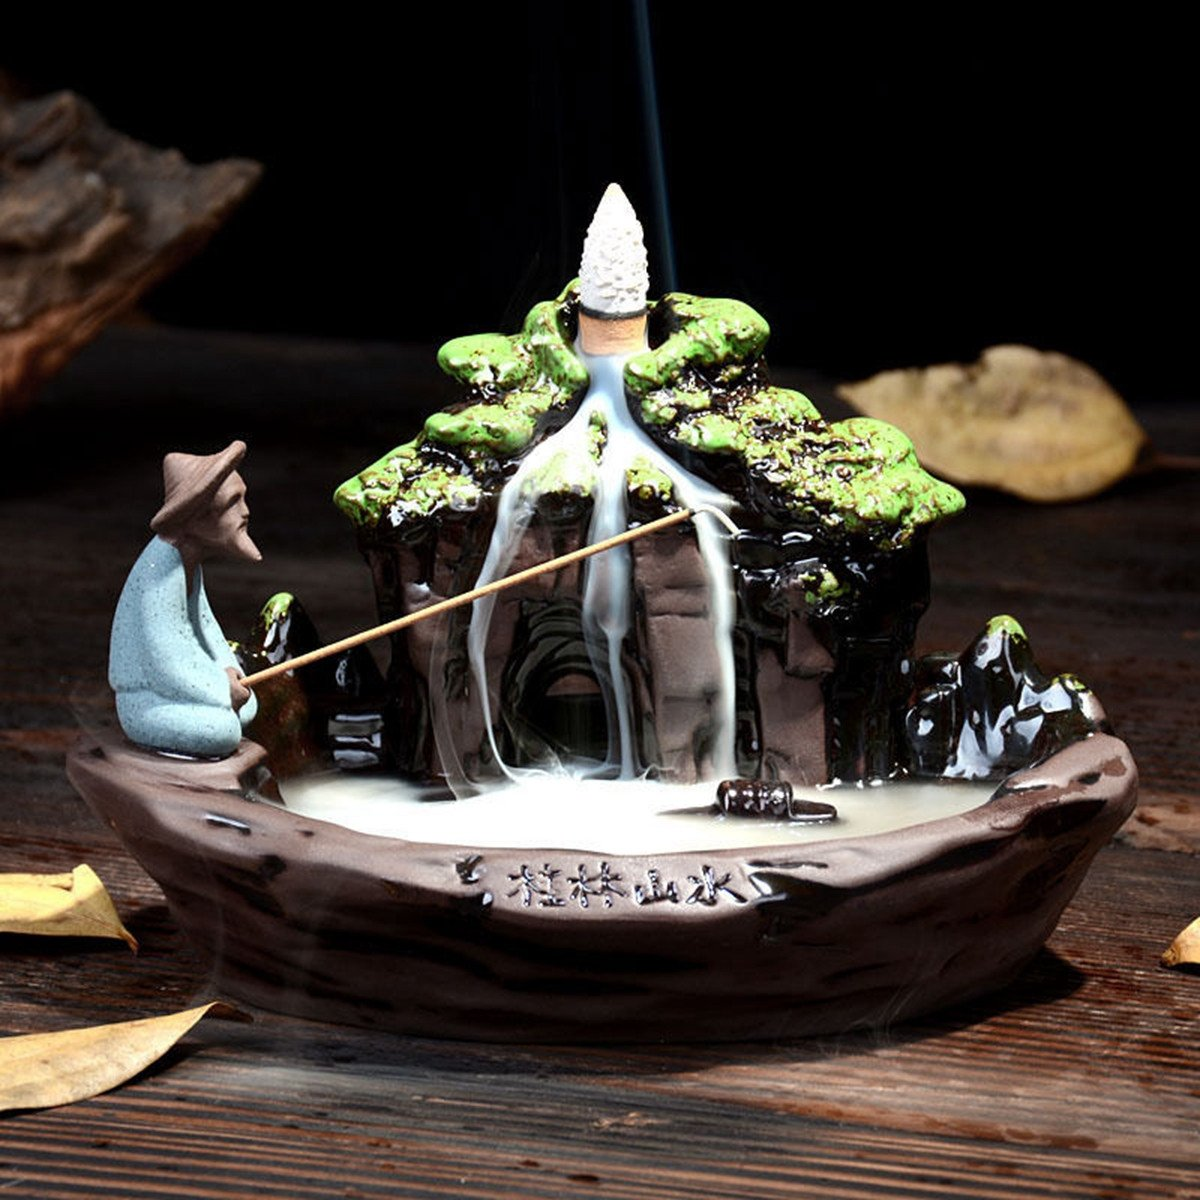 Jeteven Big Ceramic Incense Burner Backflow Incense Burner Holder + 10pcs Incense Cones Incense Stick Holder for Home Office Decor 7.48\'\'X4.53\'\'X4.72\'\'